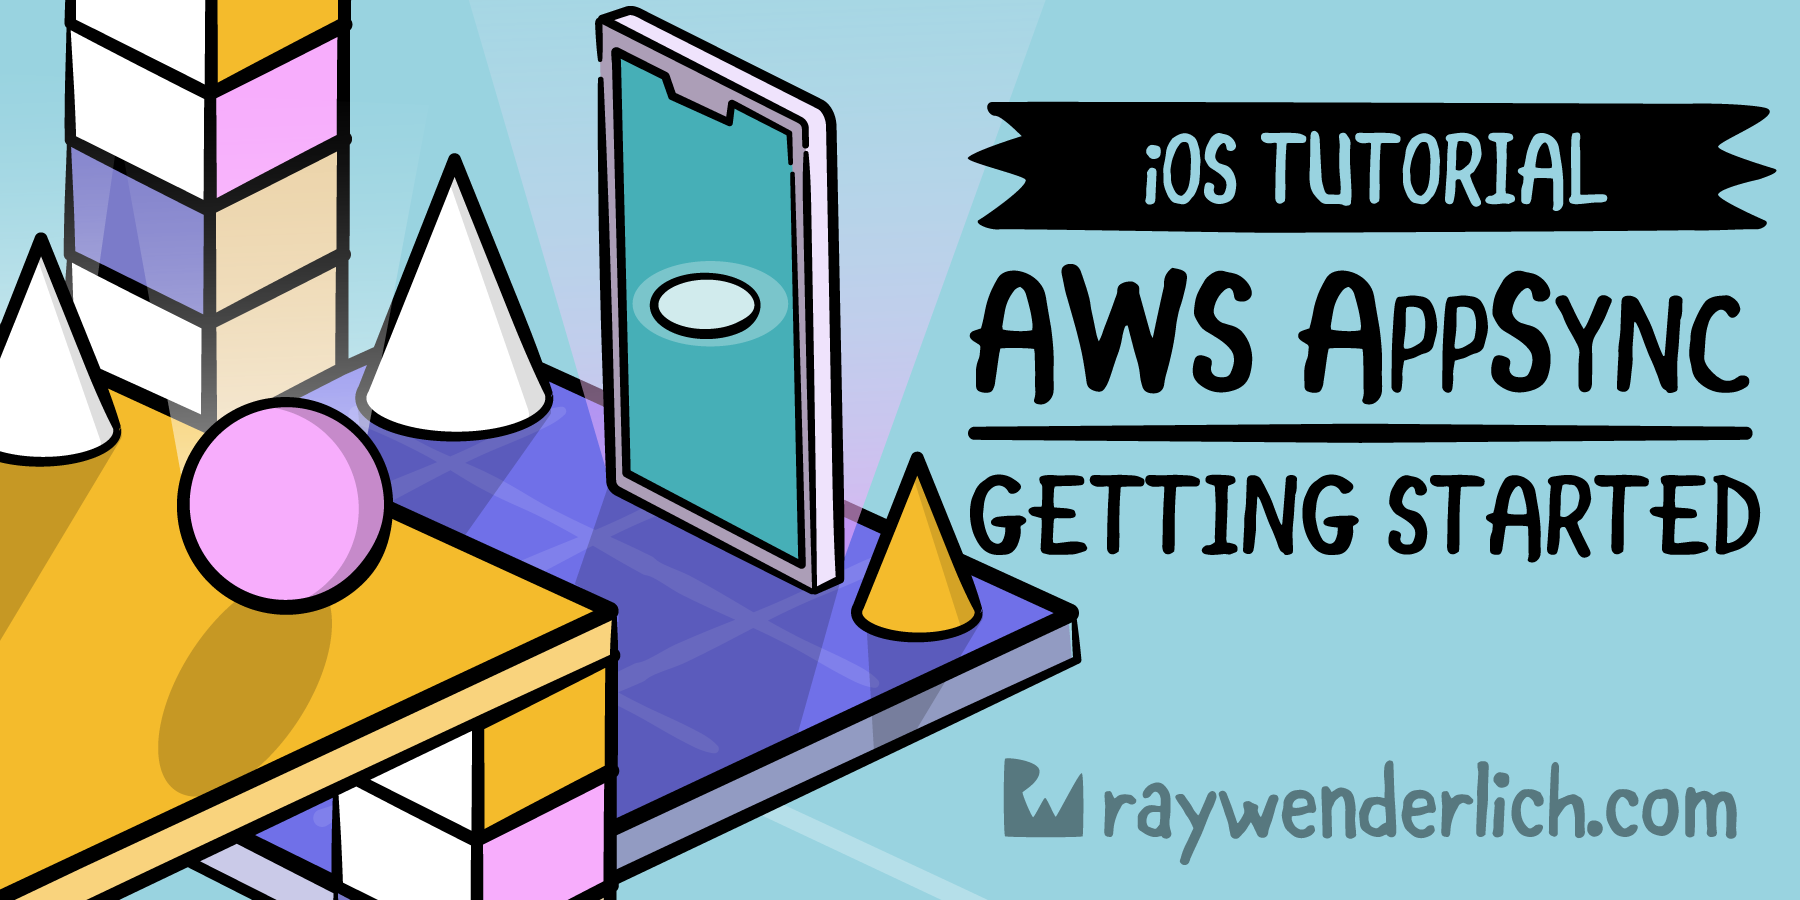 Getting Started with AWS AppSync for iOS [FREE]